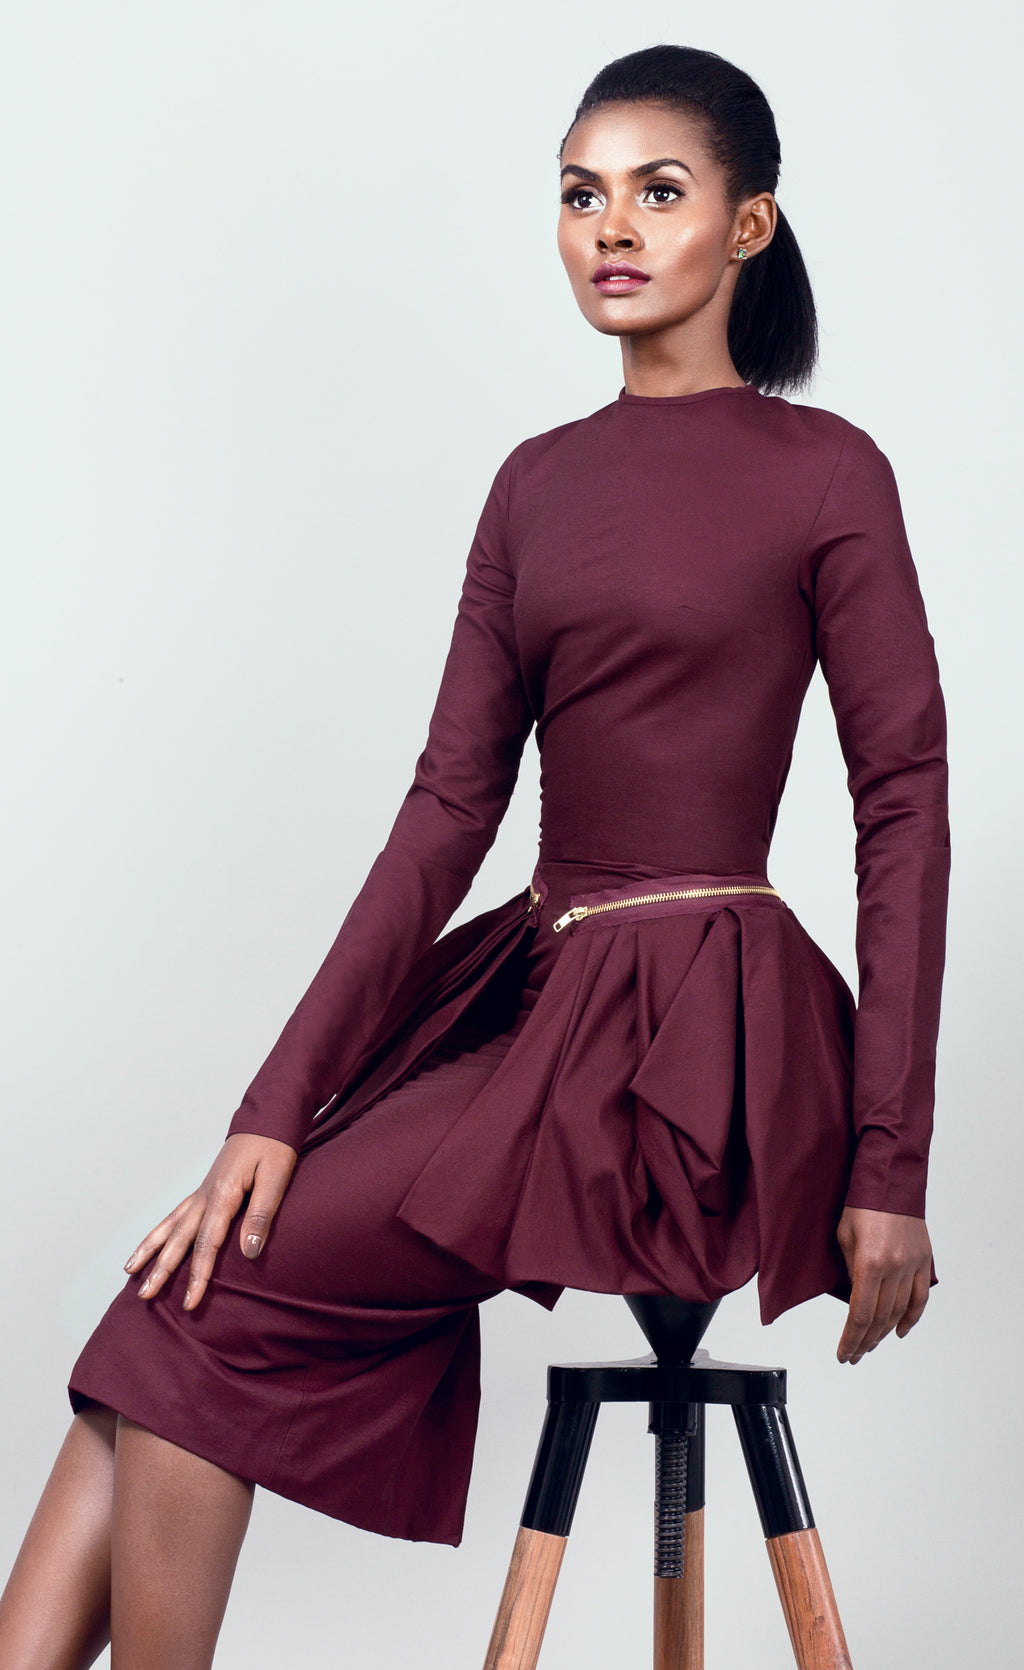 Semi-fitted round neck Dress with pleated peplum